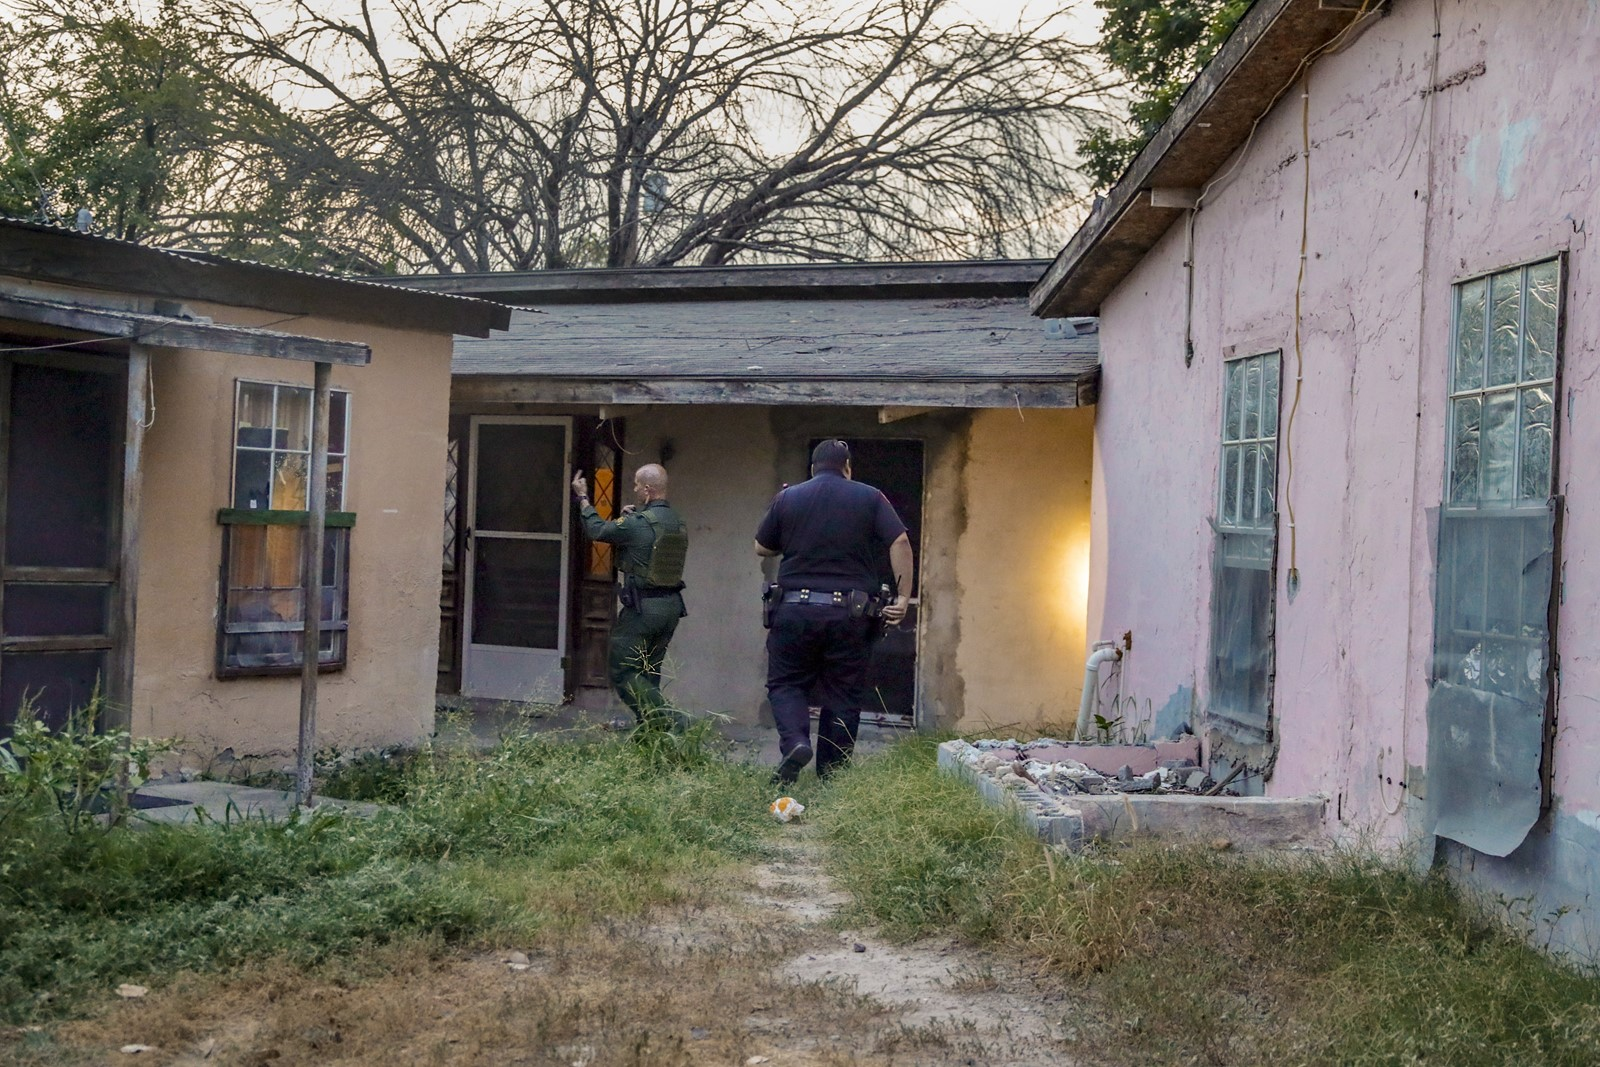 A Border Patrol agent and police officer in Roma, Texas, search the border town's so-called pink apartments, where they would detain men suspected of illegal immigration. Sandra Garcia said her family, which owns the complex, does not smuggle migrants. — Photograph: Robert Gauthier/Los Angeles Times.